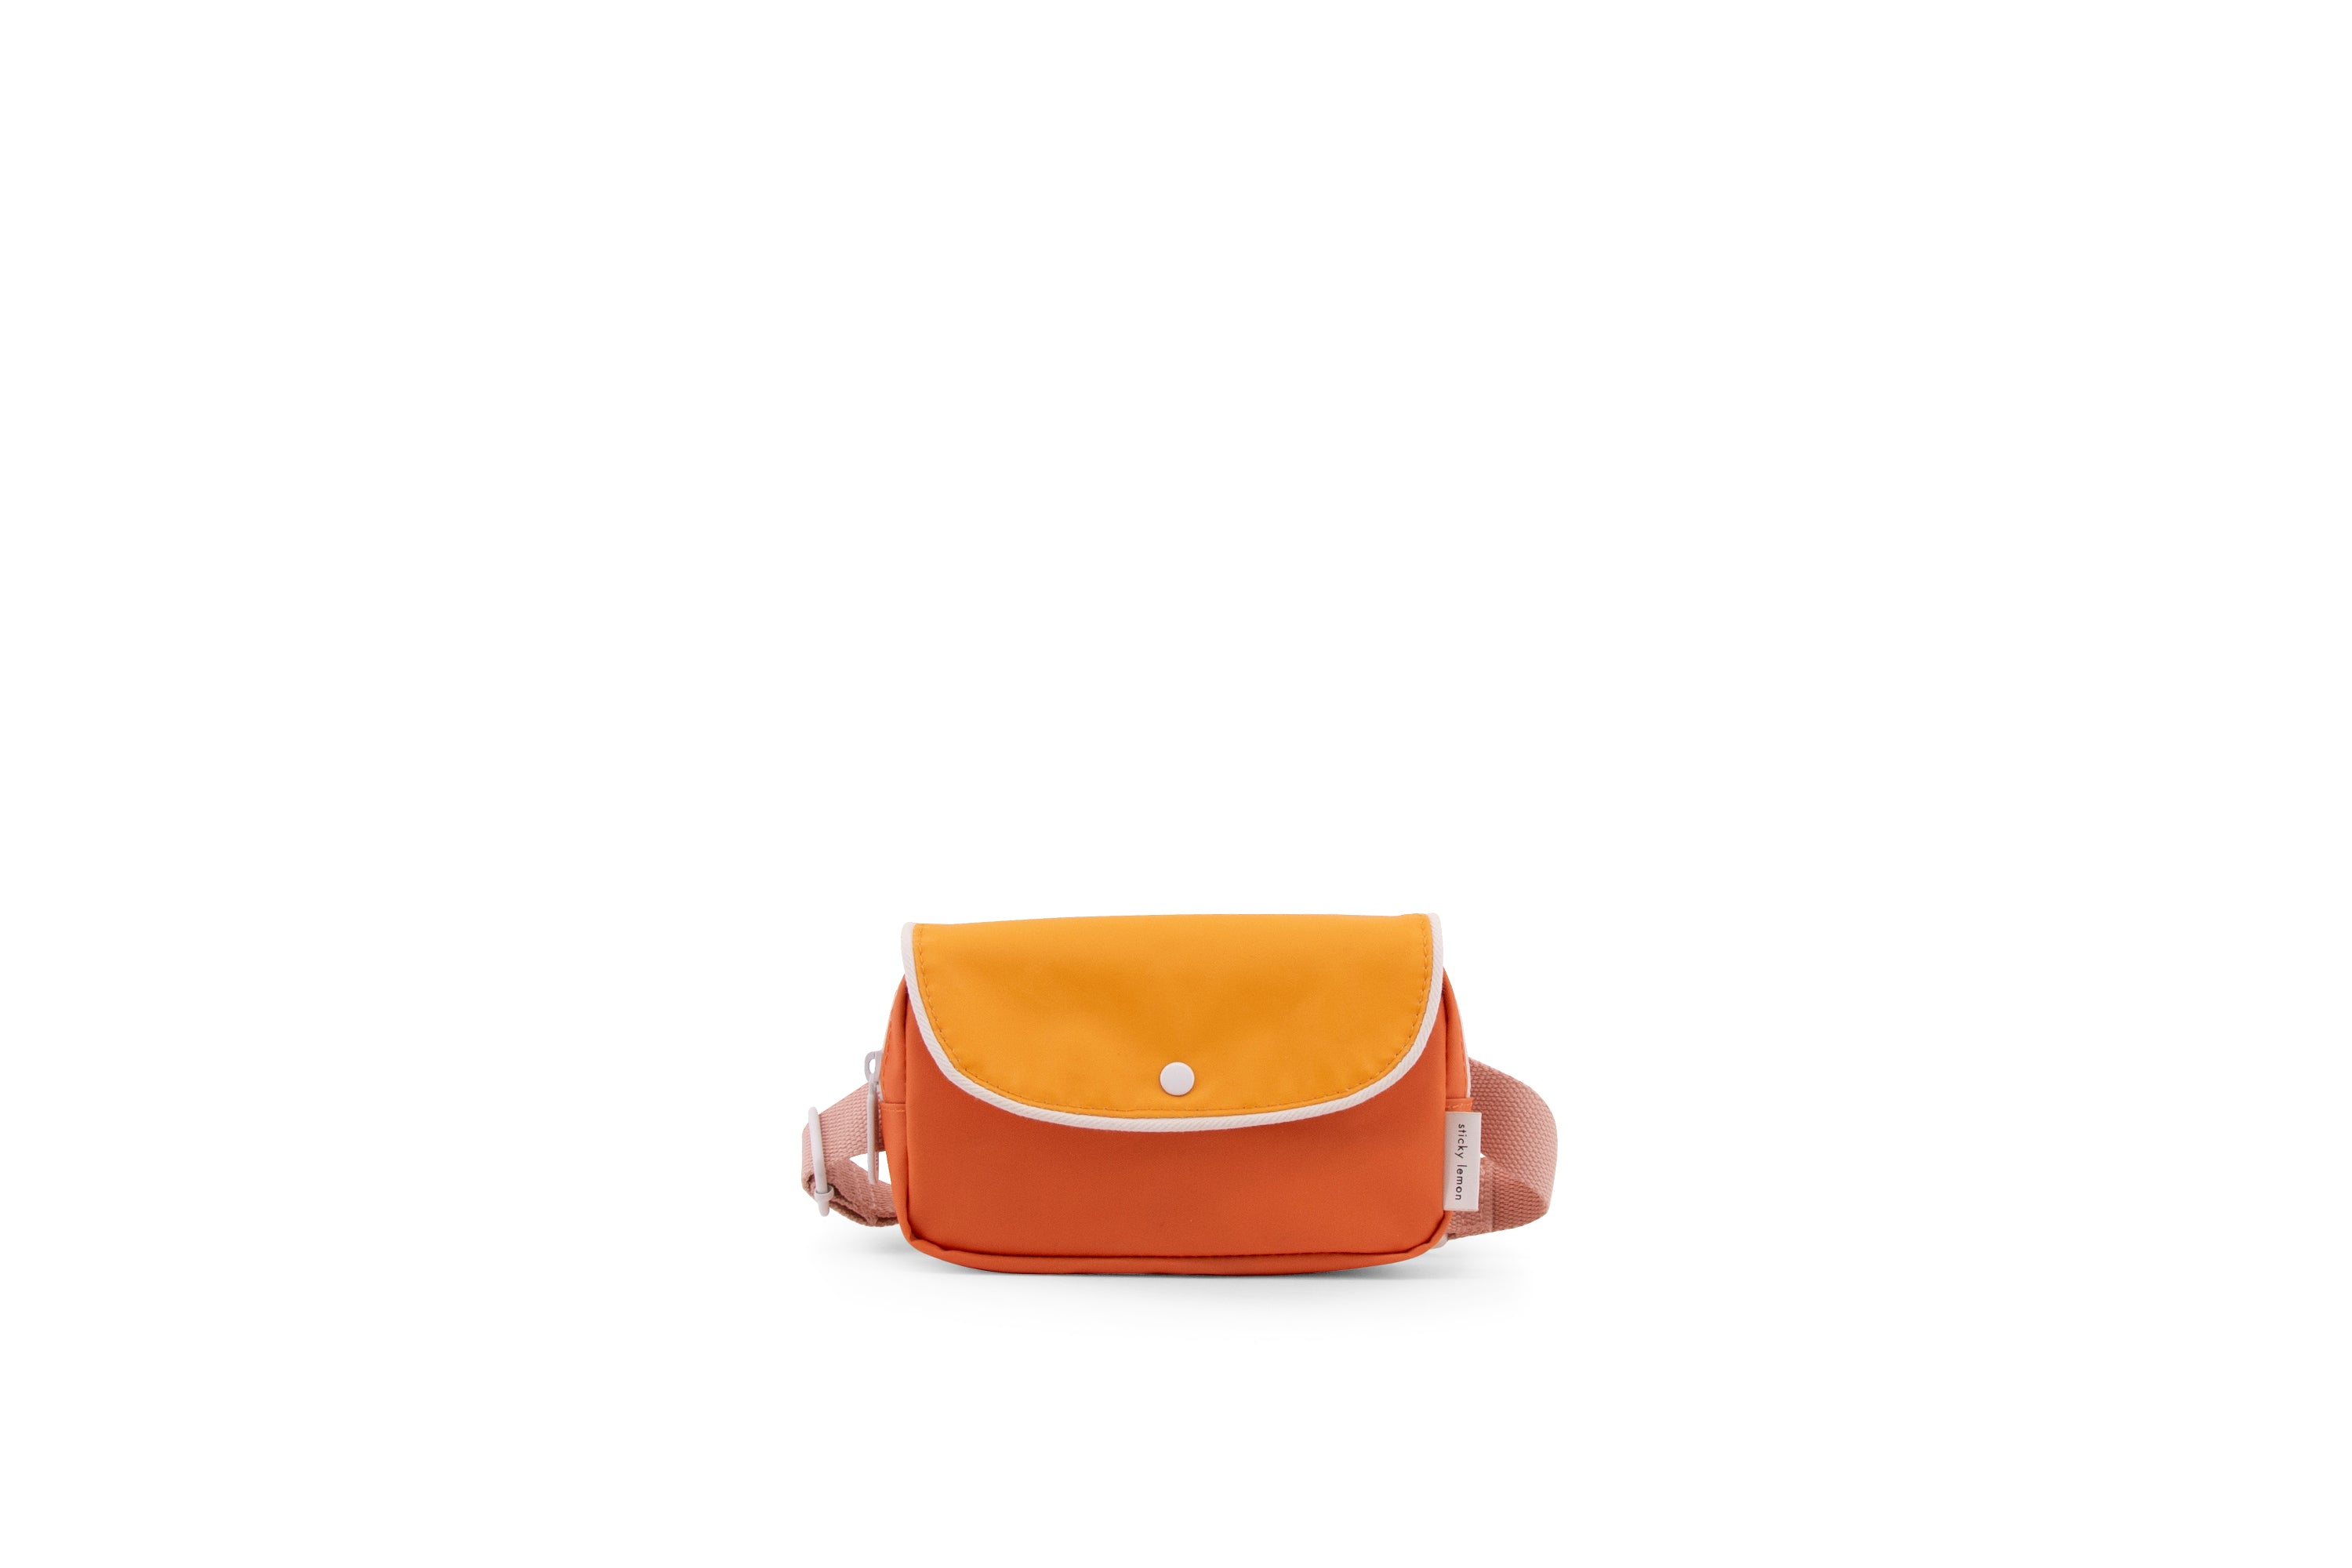 Fanny pack  | carrot orange + sunny yellow + candy pink